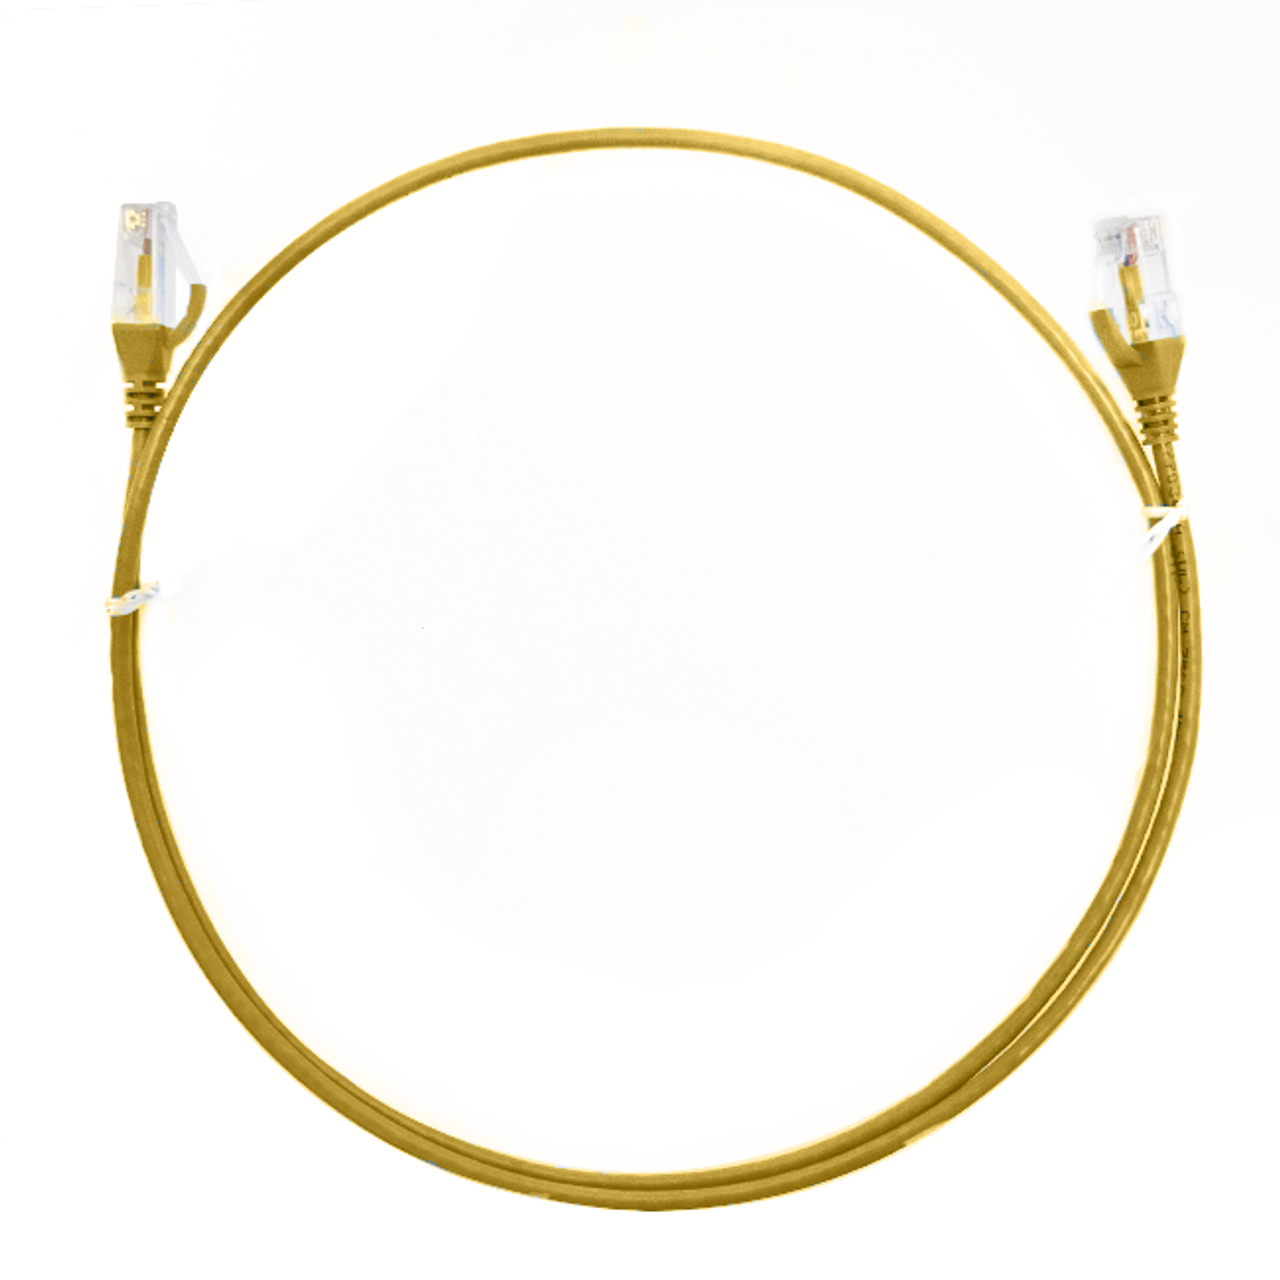 Image for 1m Cat 6 Ultra Thin LSZH Ethernet Network Cables: Yellow CX Computer Superstore